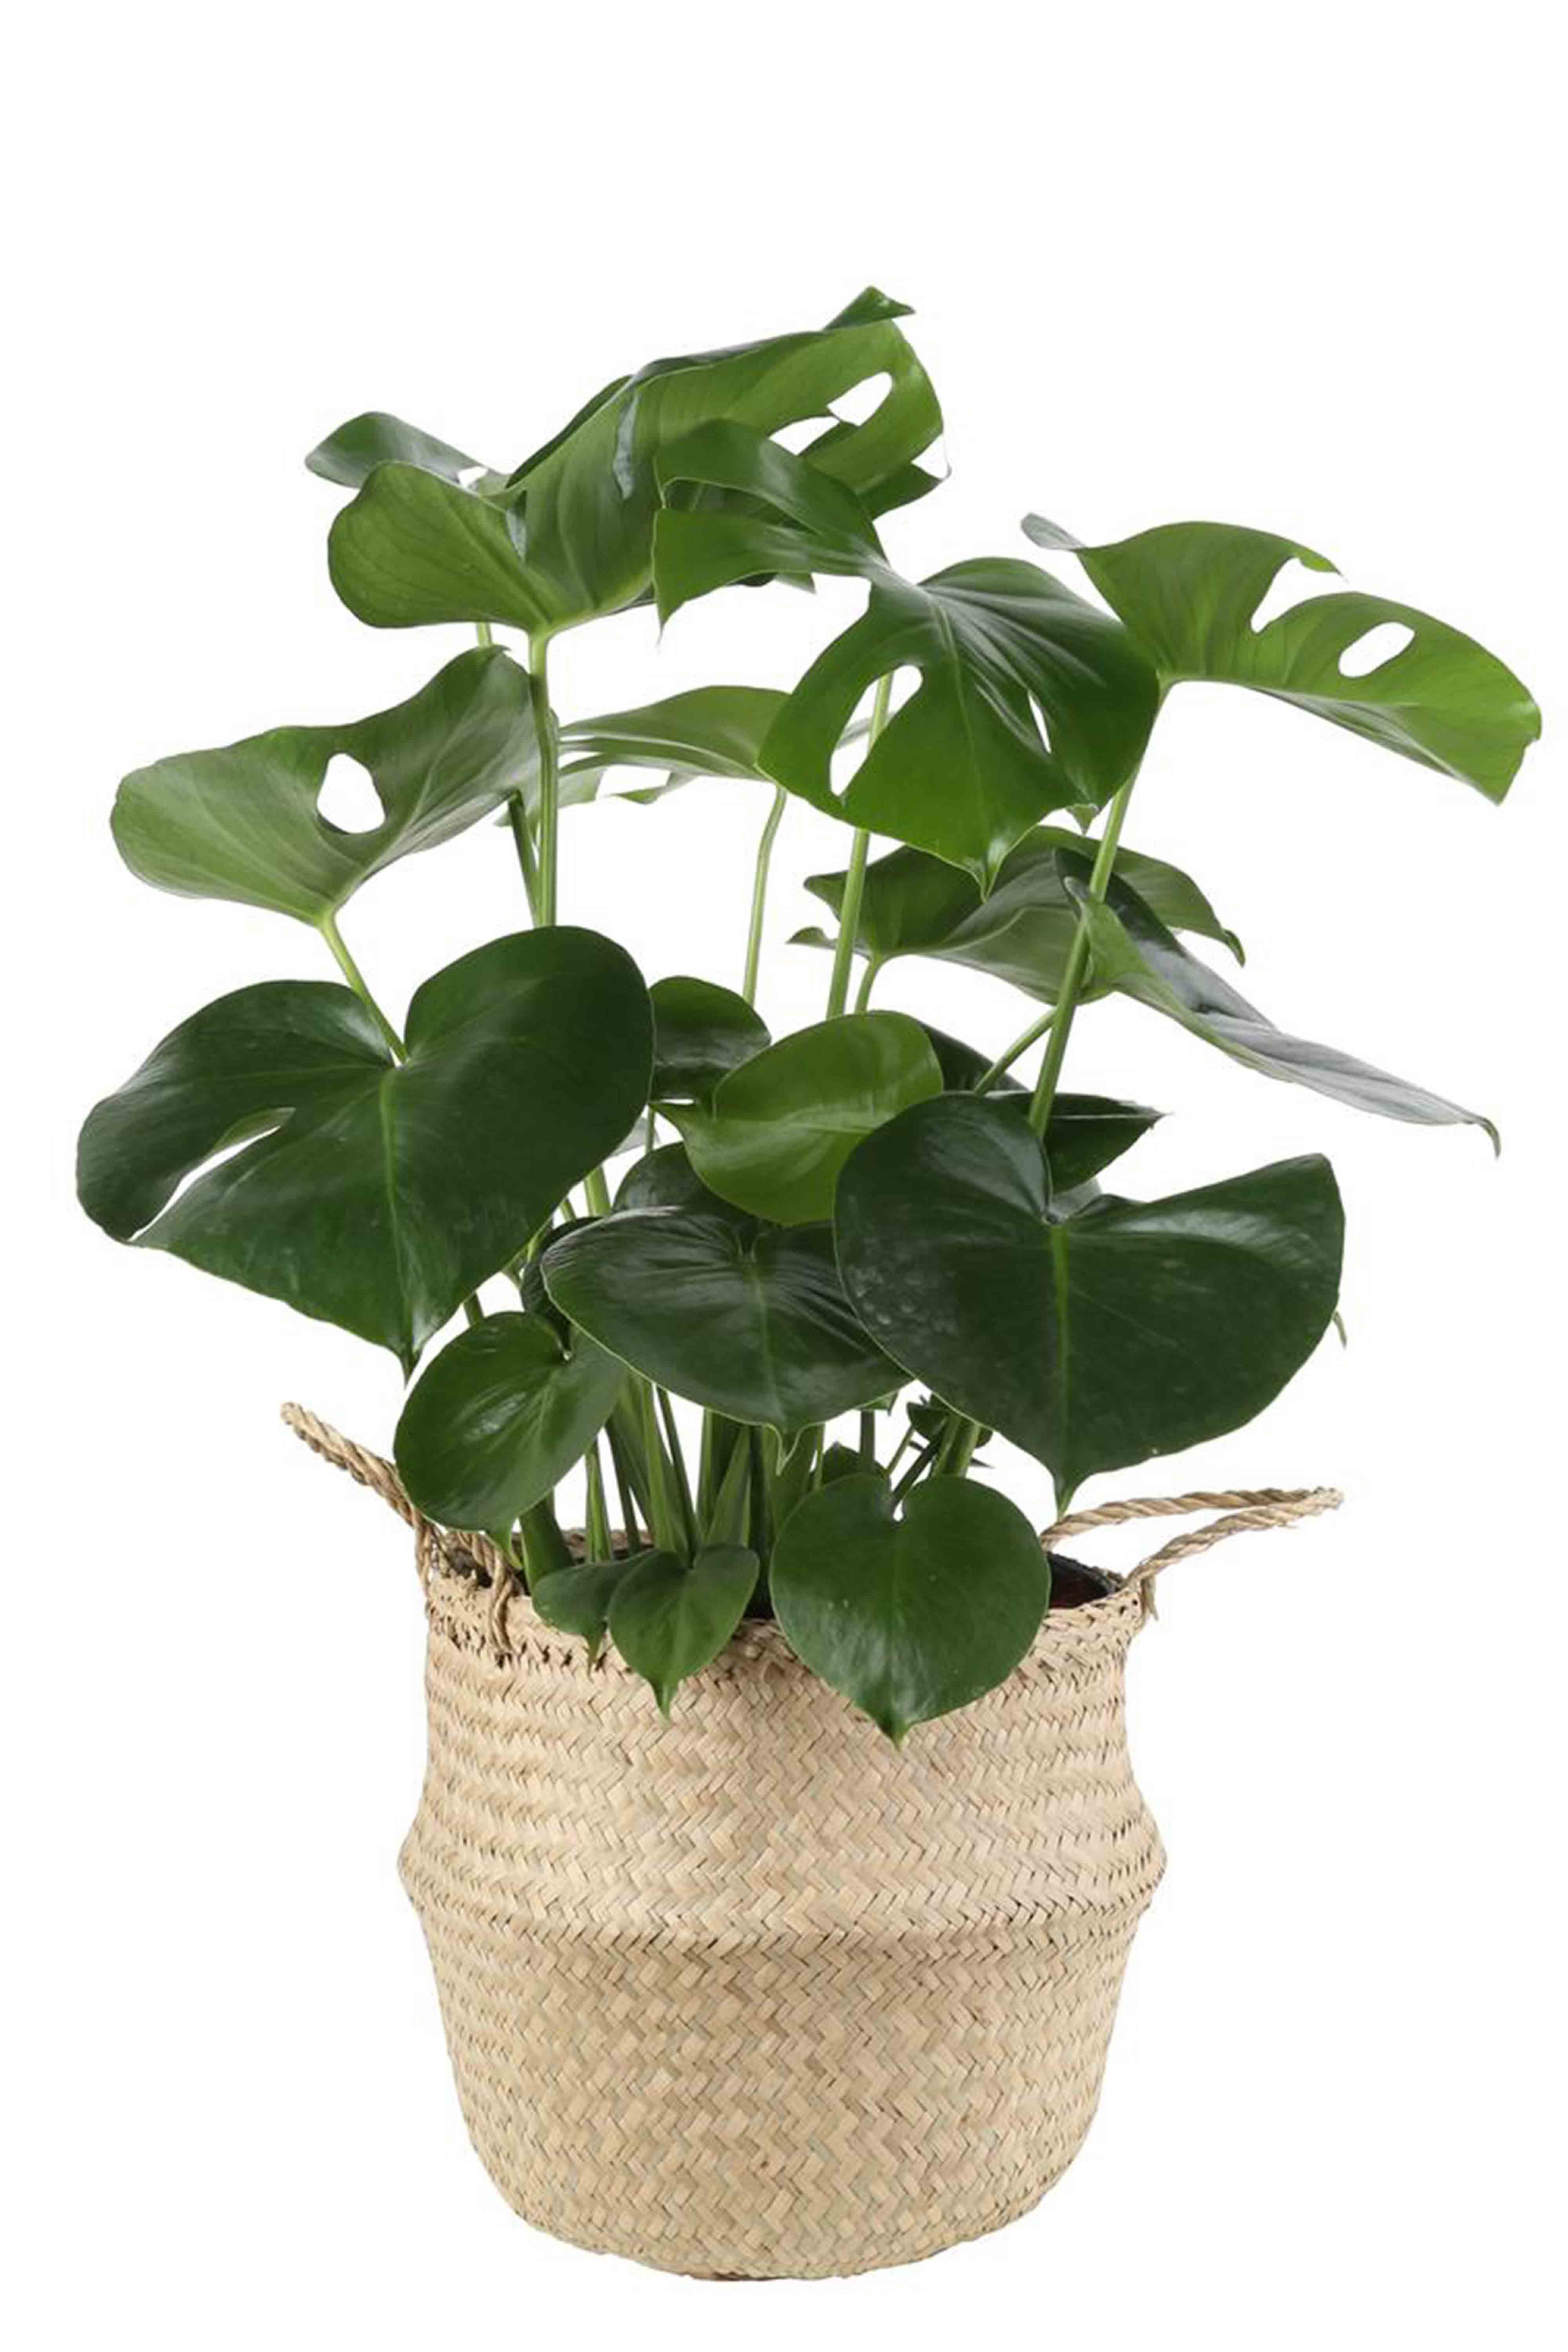 25 Best Indoor Plants For Apartments - Low-Maintenance ... Names Of Green Houseplants on names of pests, names of wildlife, names of tea bags, names of design, names of corn, names of health, names of bromeliads, names of baskets, names of biennials, names of climbers, names of art, names of perennials, names of vines, names of gifts, names of gardens, names of greenhouses, names of water, names of soil, names of plants, names of hibiscus,